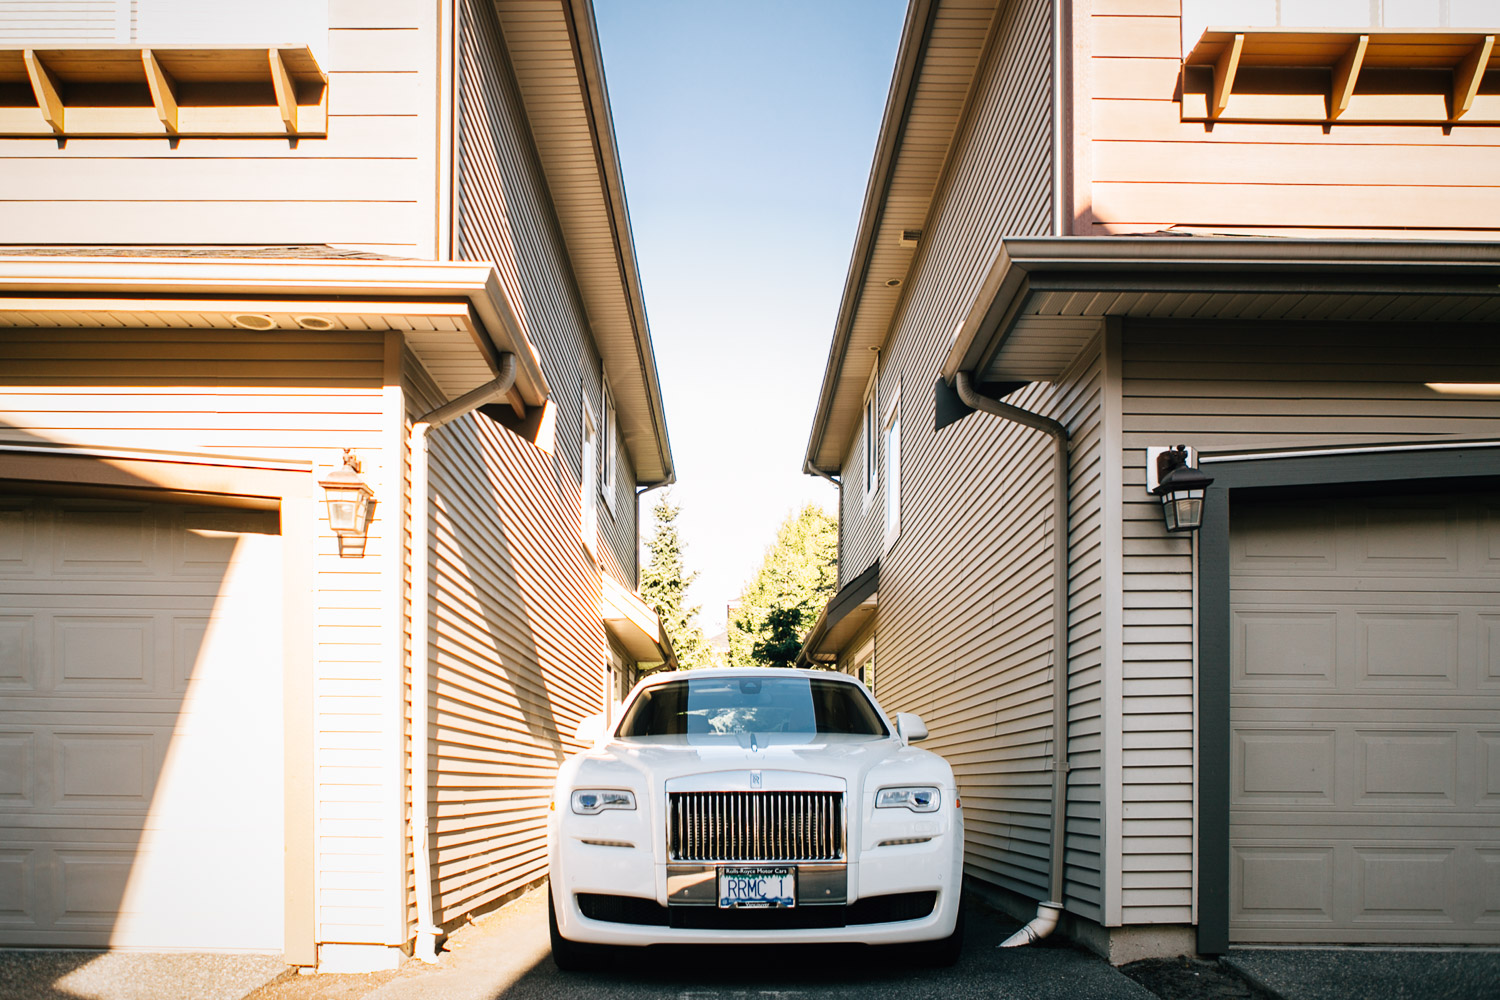 richmond-wedding-photography-rolls-royce-chinese